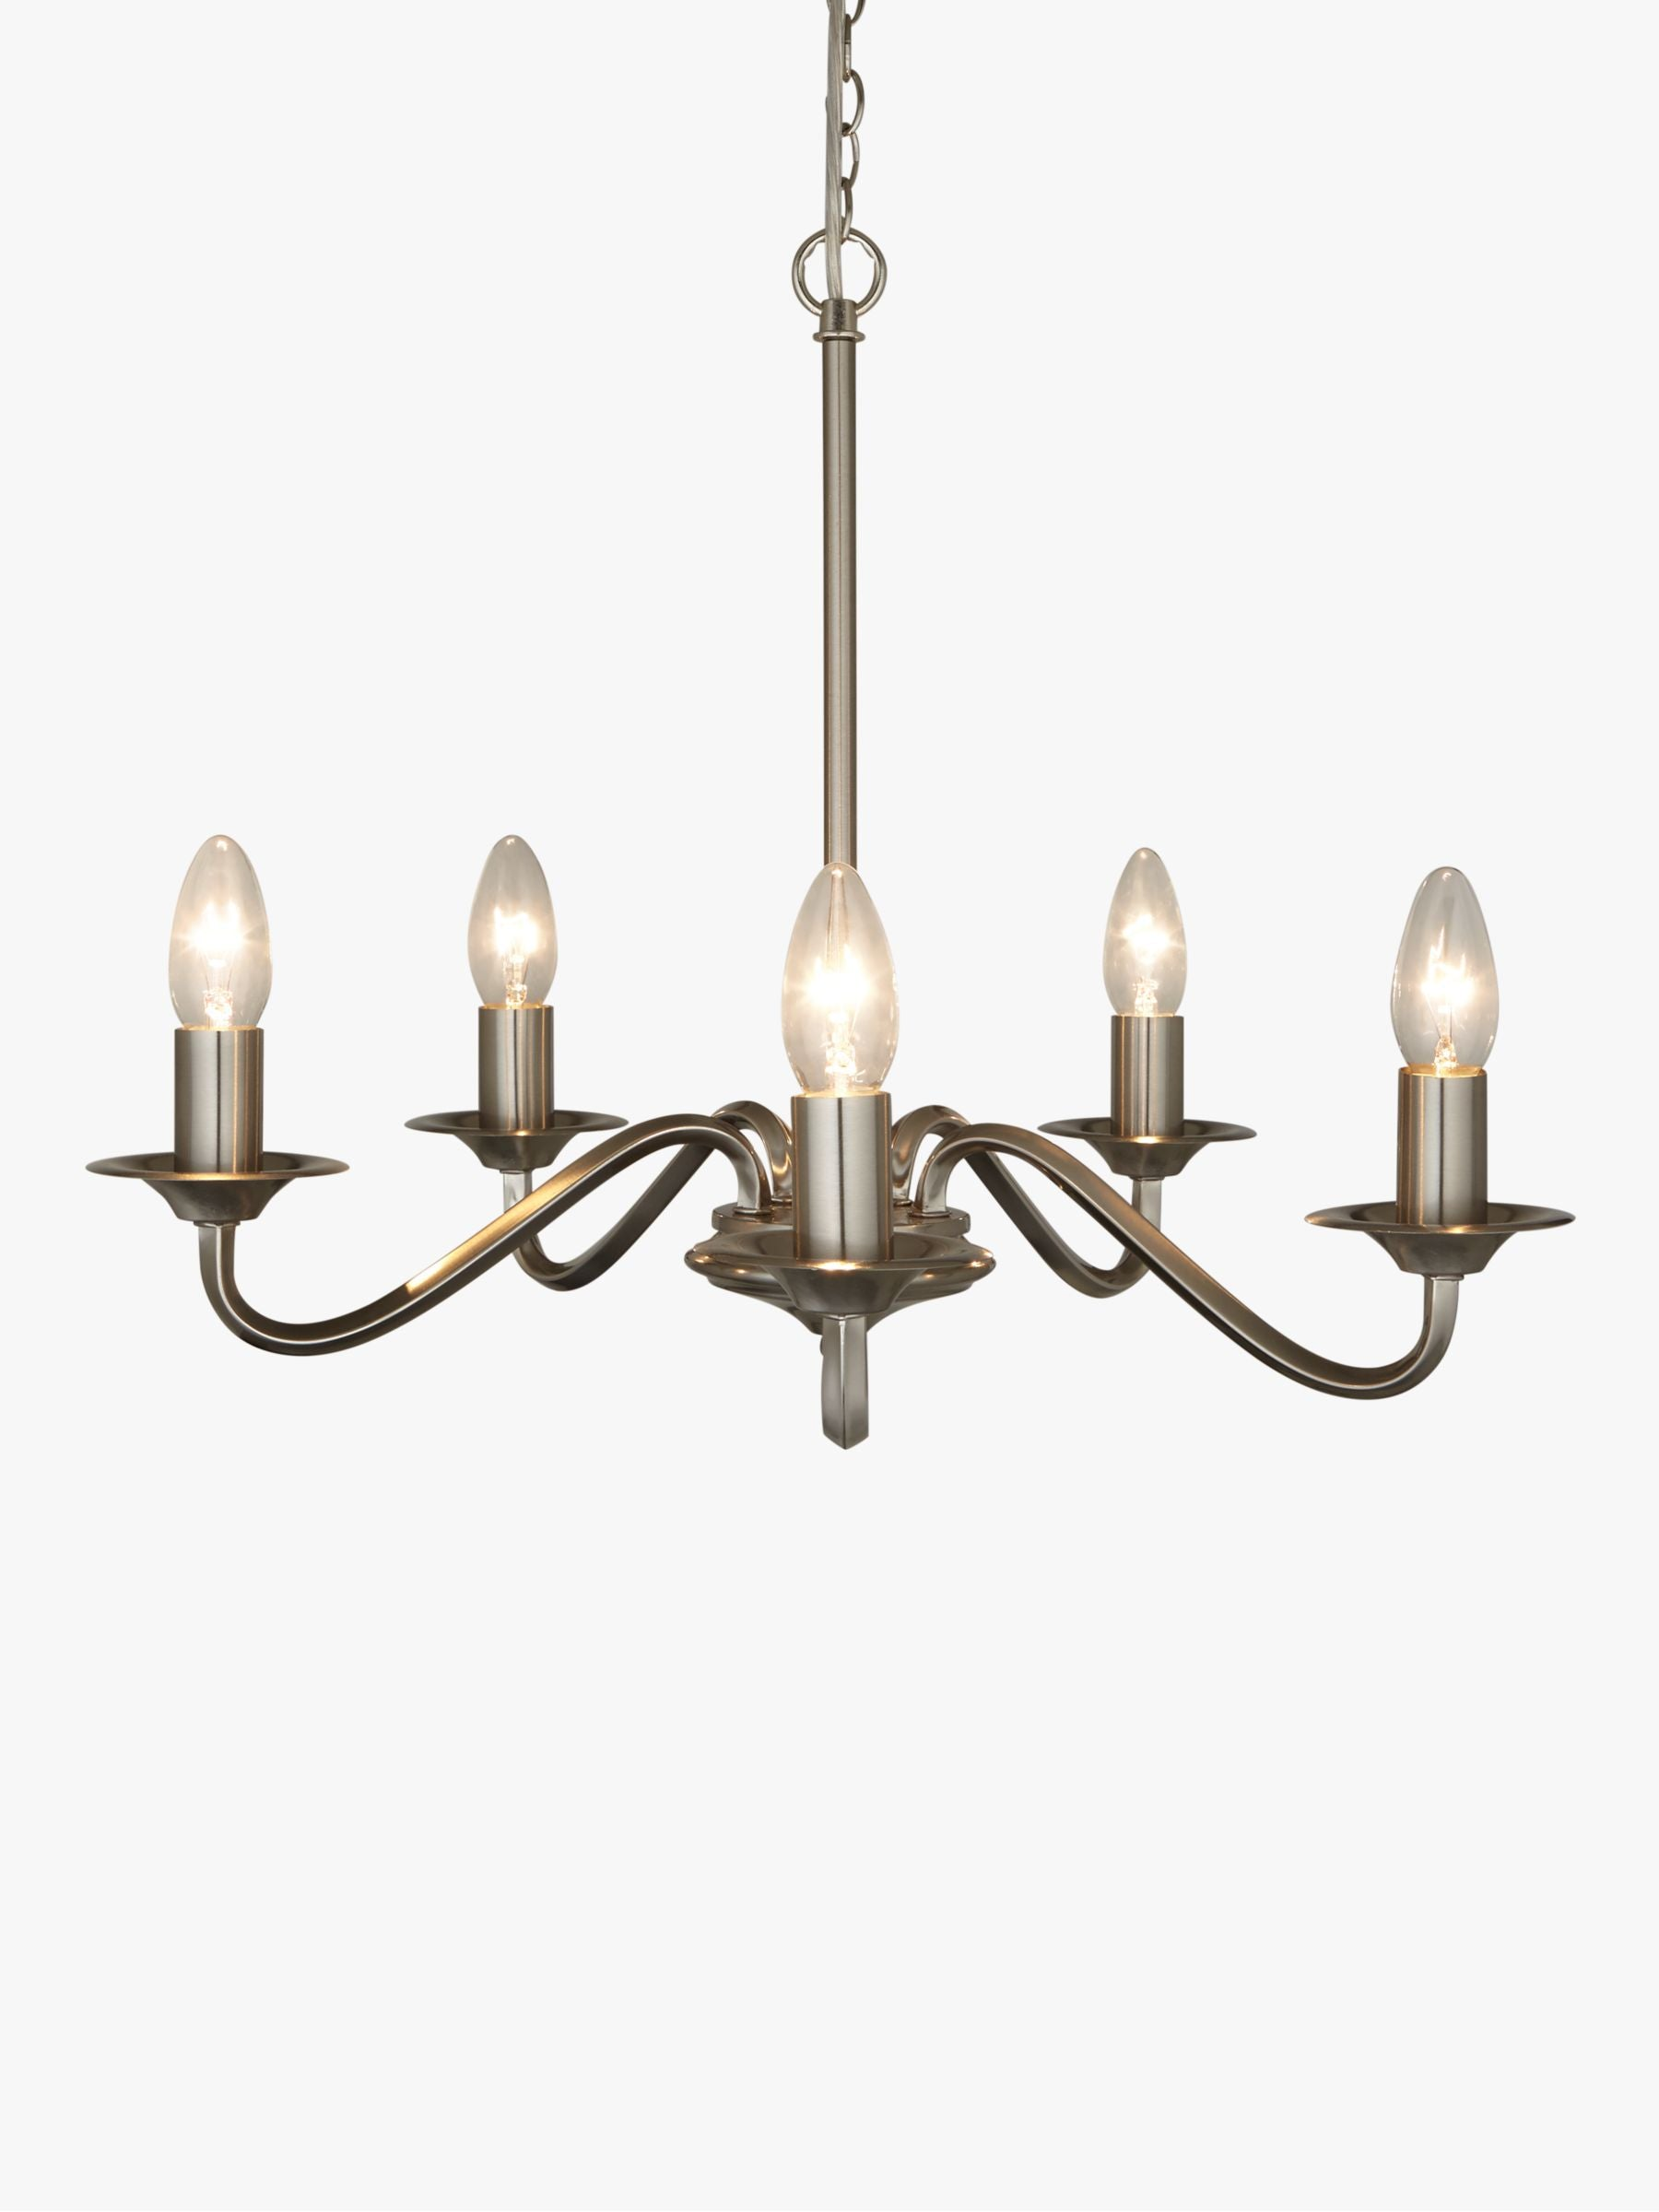 John Lewis & Partners Wakefield Chandelier Ceiling Light, 5 Light, Satin Nickel